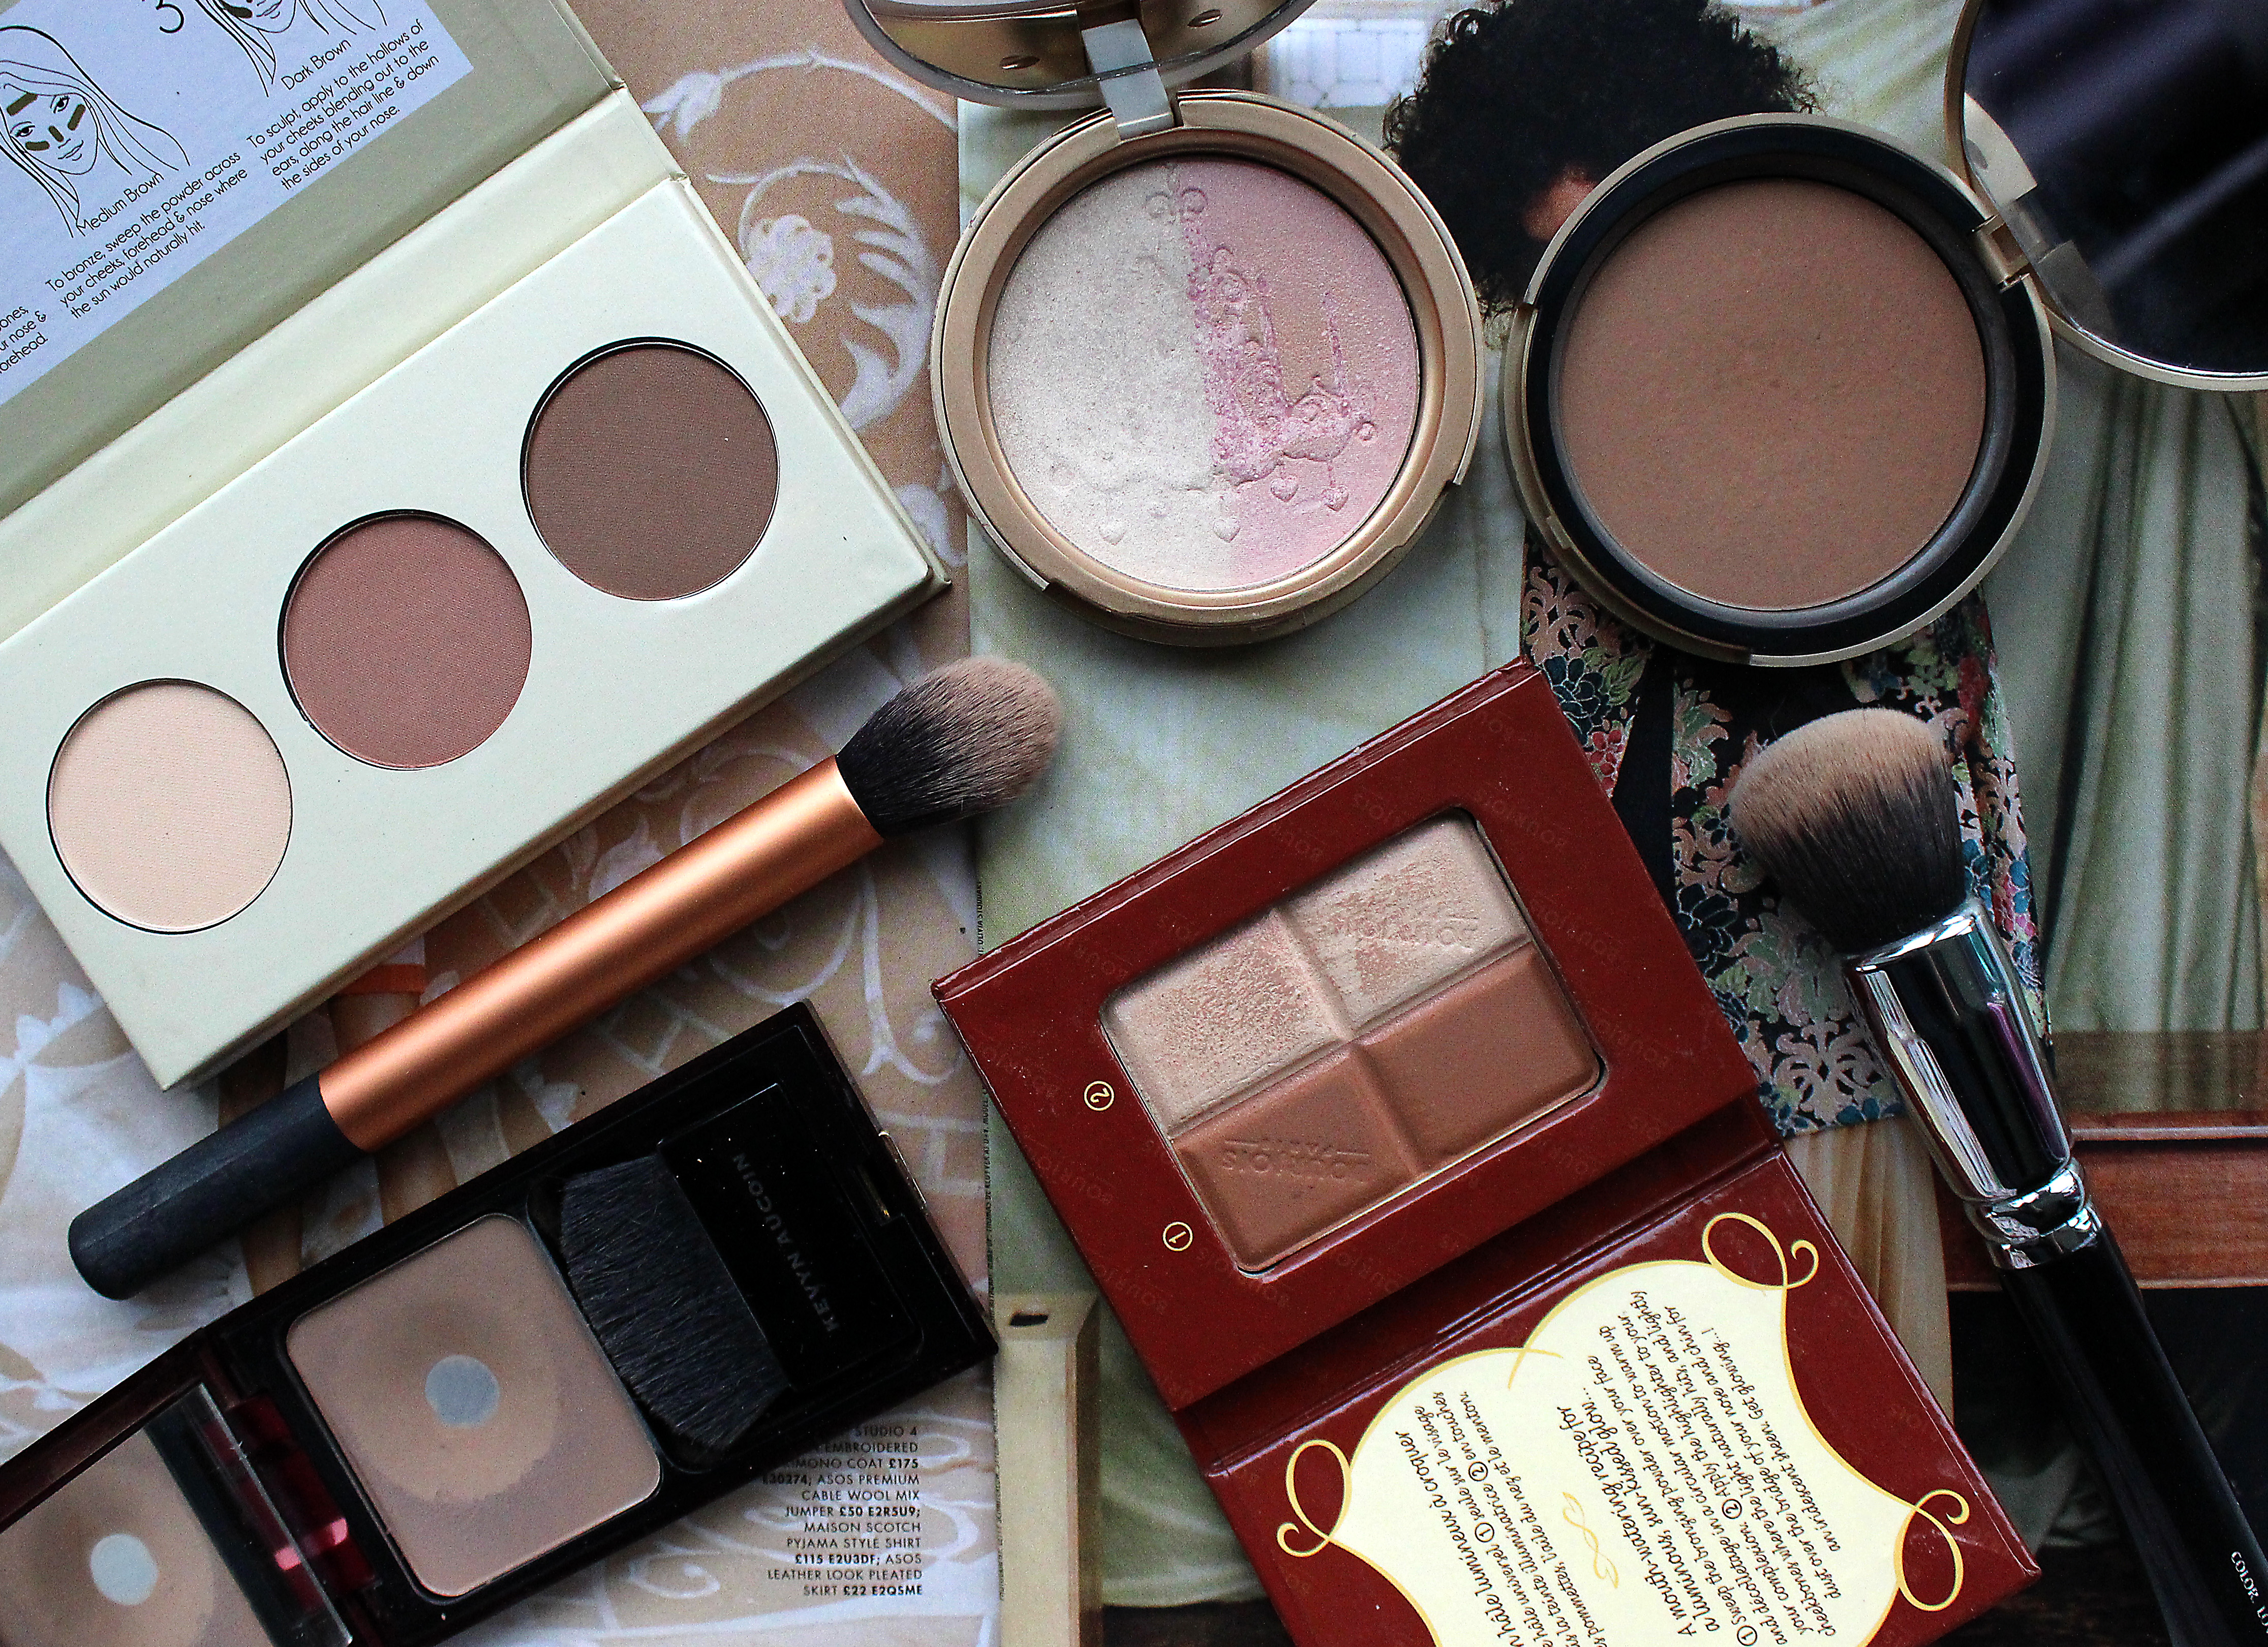 Best contour products for pale skin